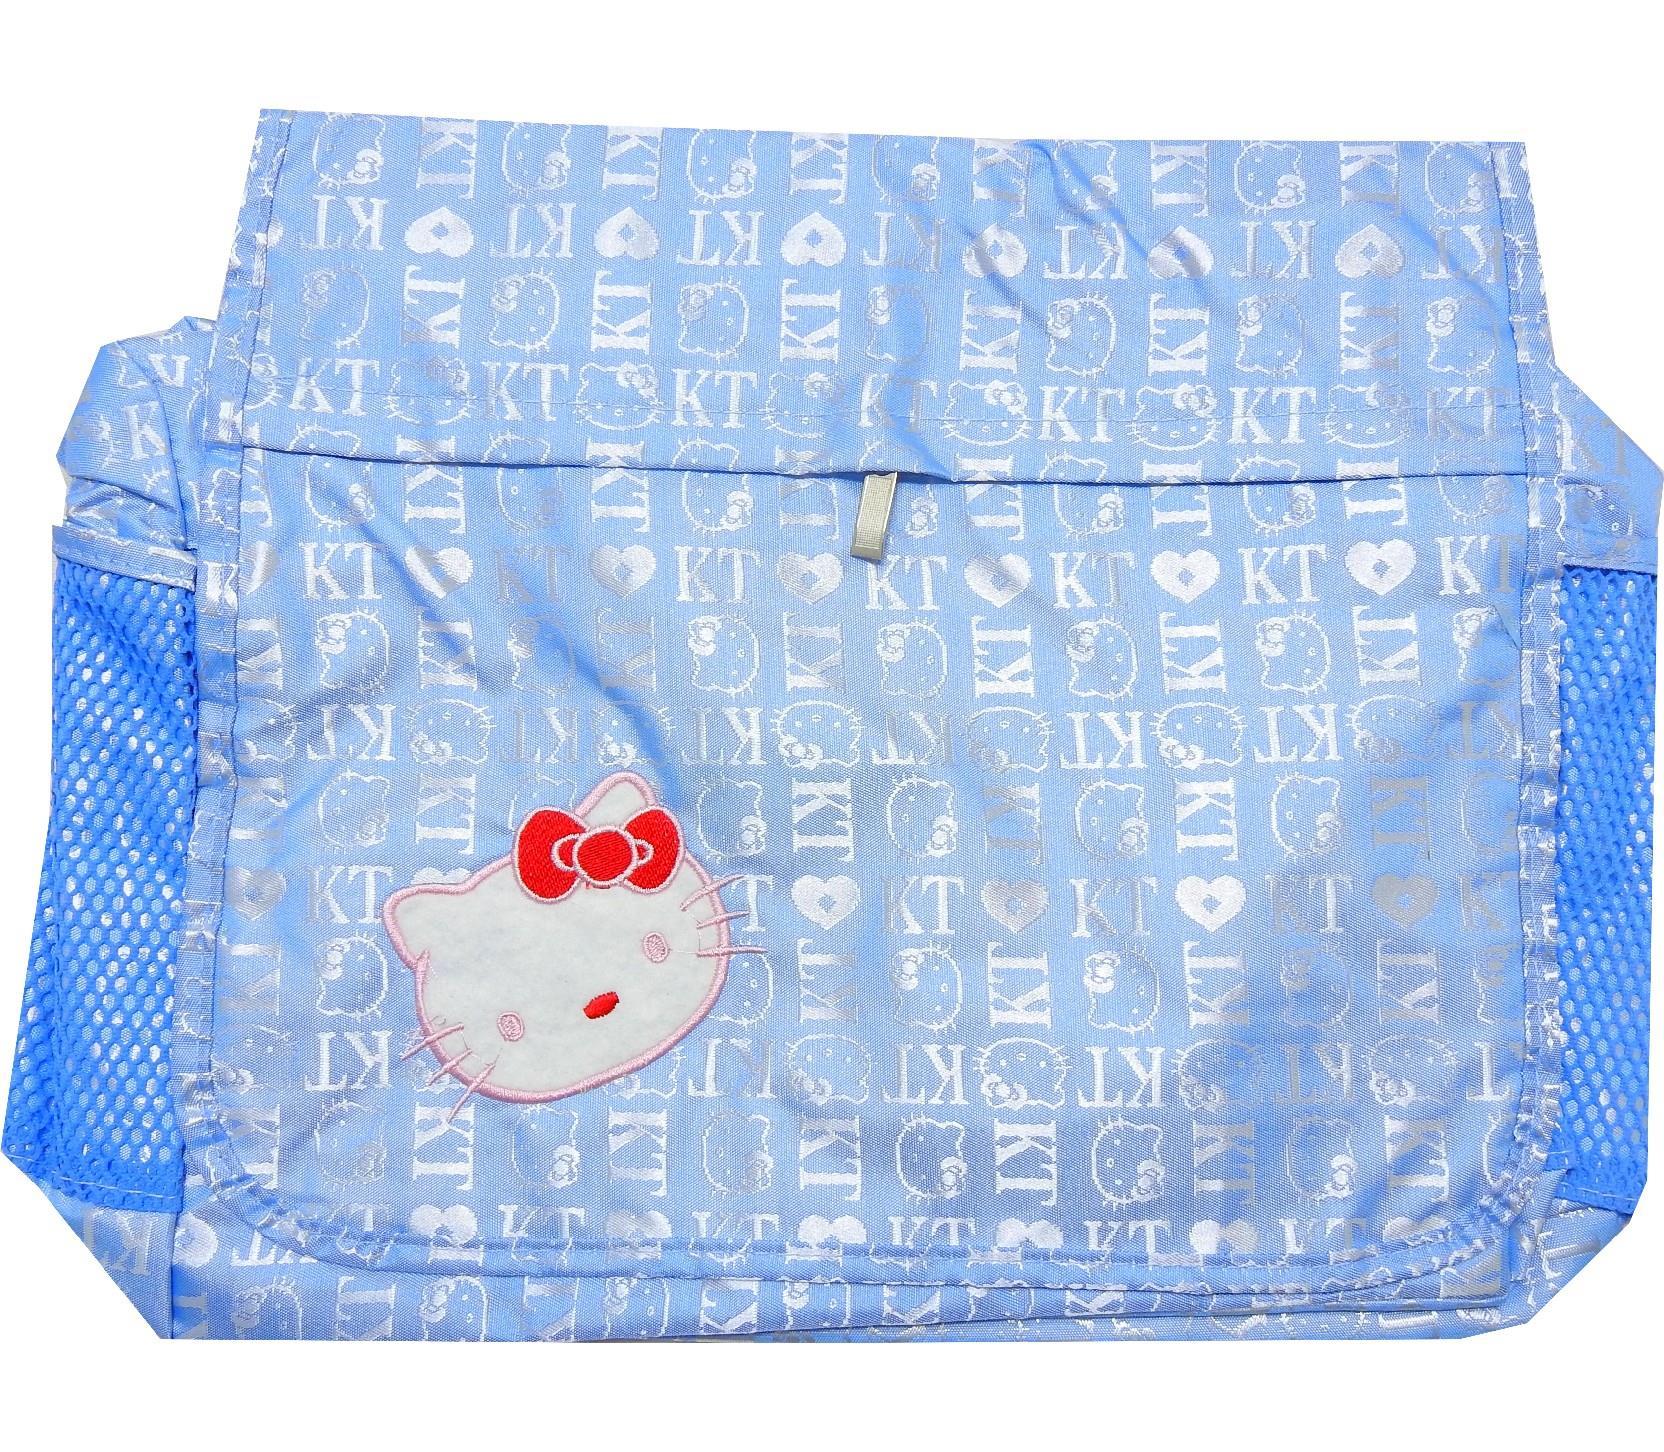 114 Wholesale bag for baby